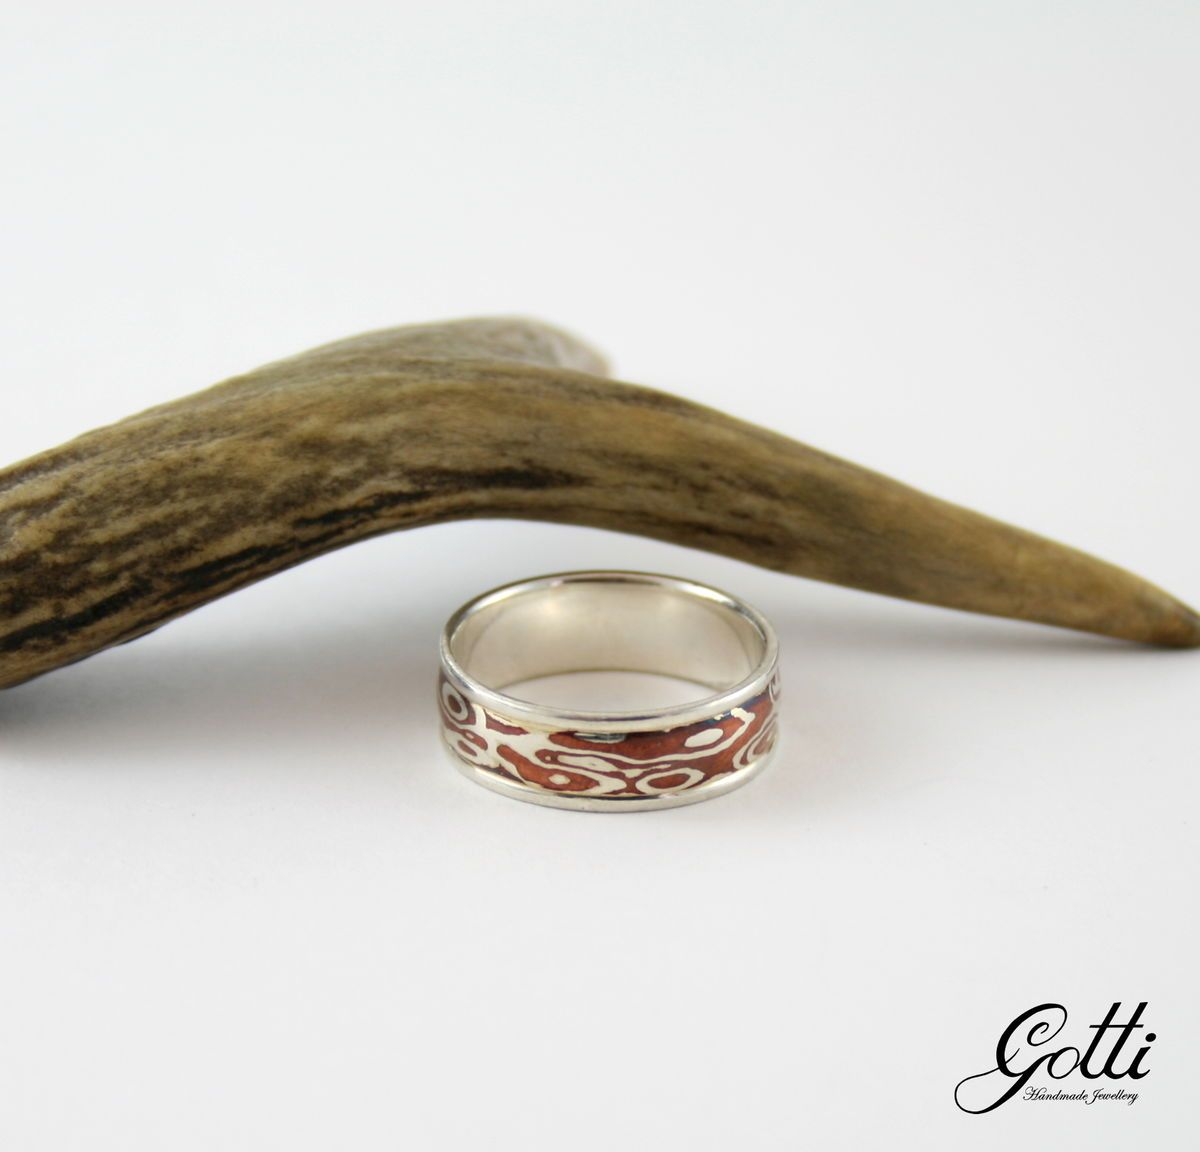 SILVER MOKUME GANE BAND RING product image SCHJ www